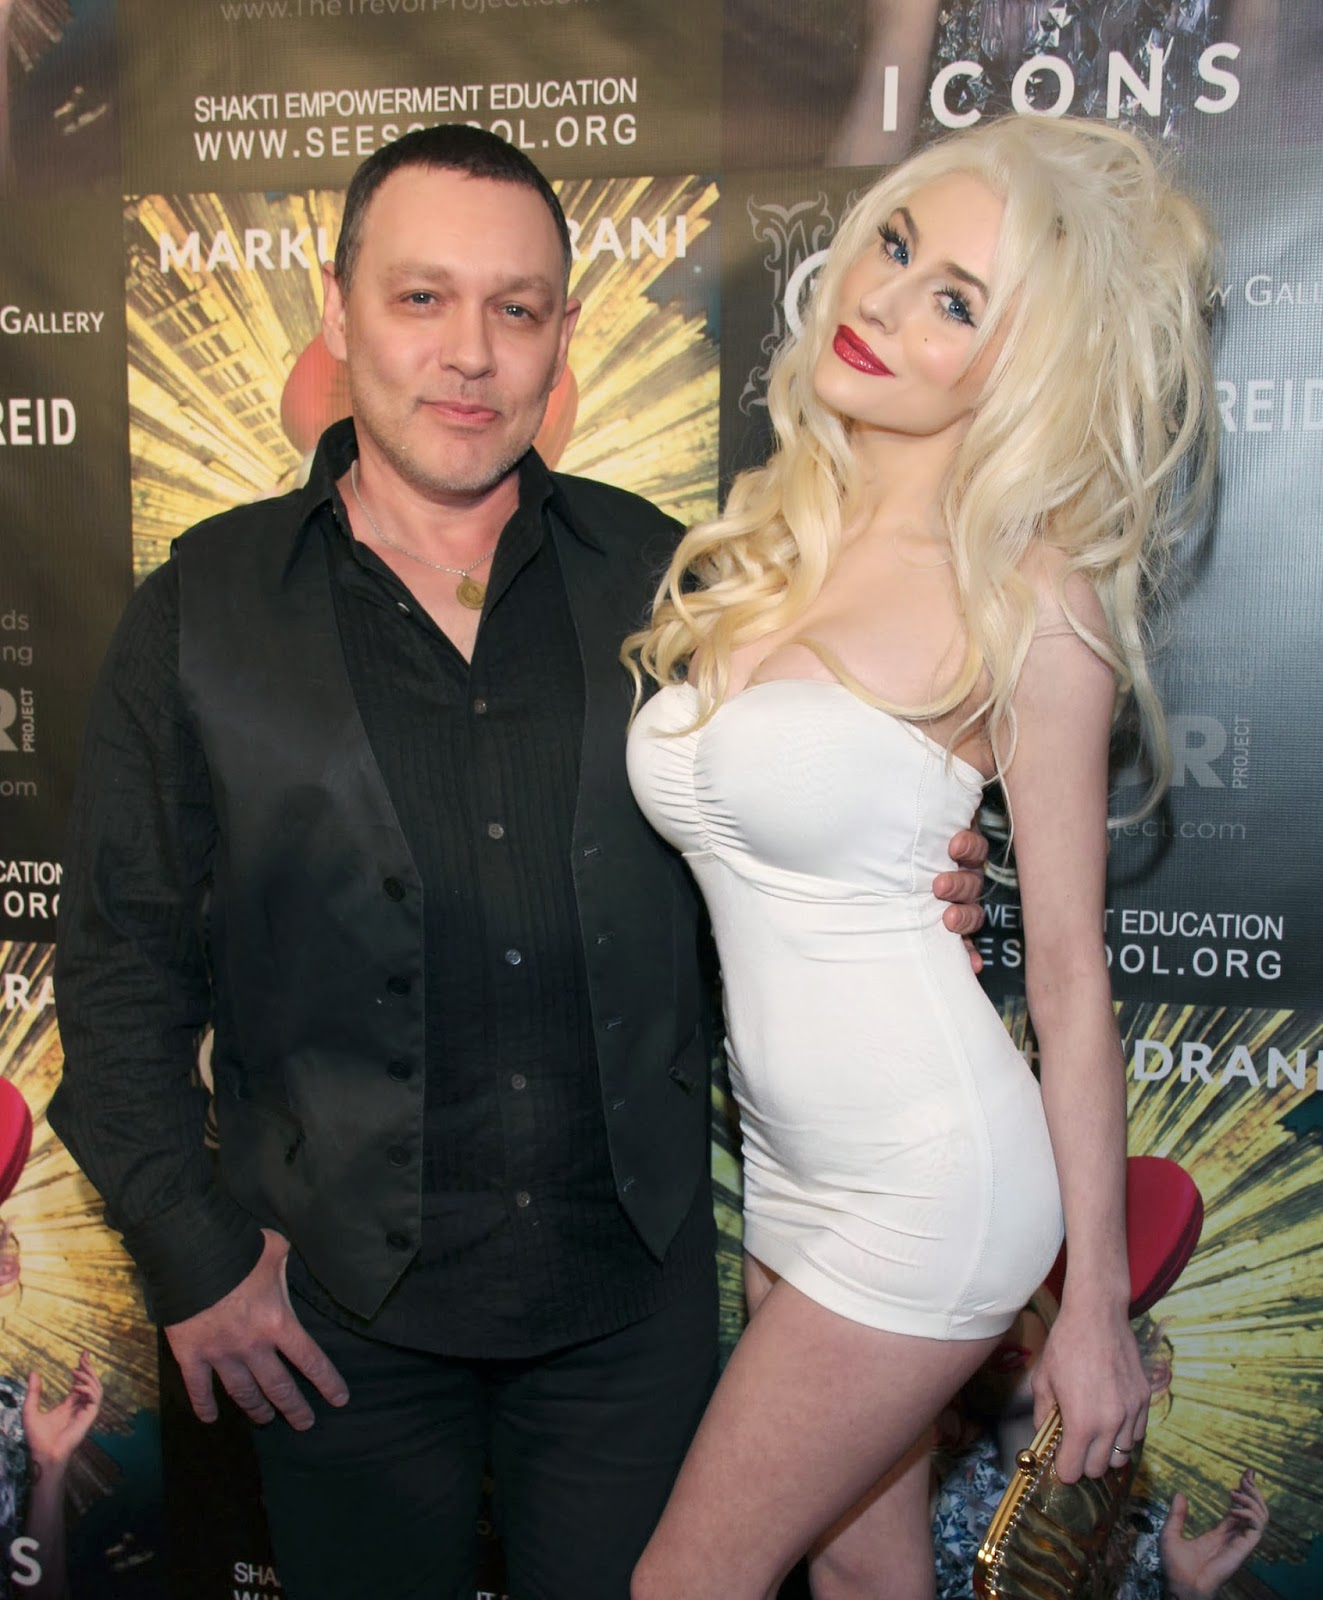 Courtney stodden sexy 49 Photos naked (39 image)